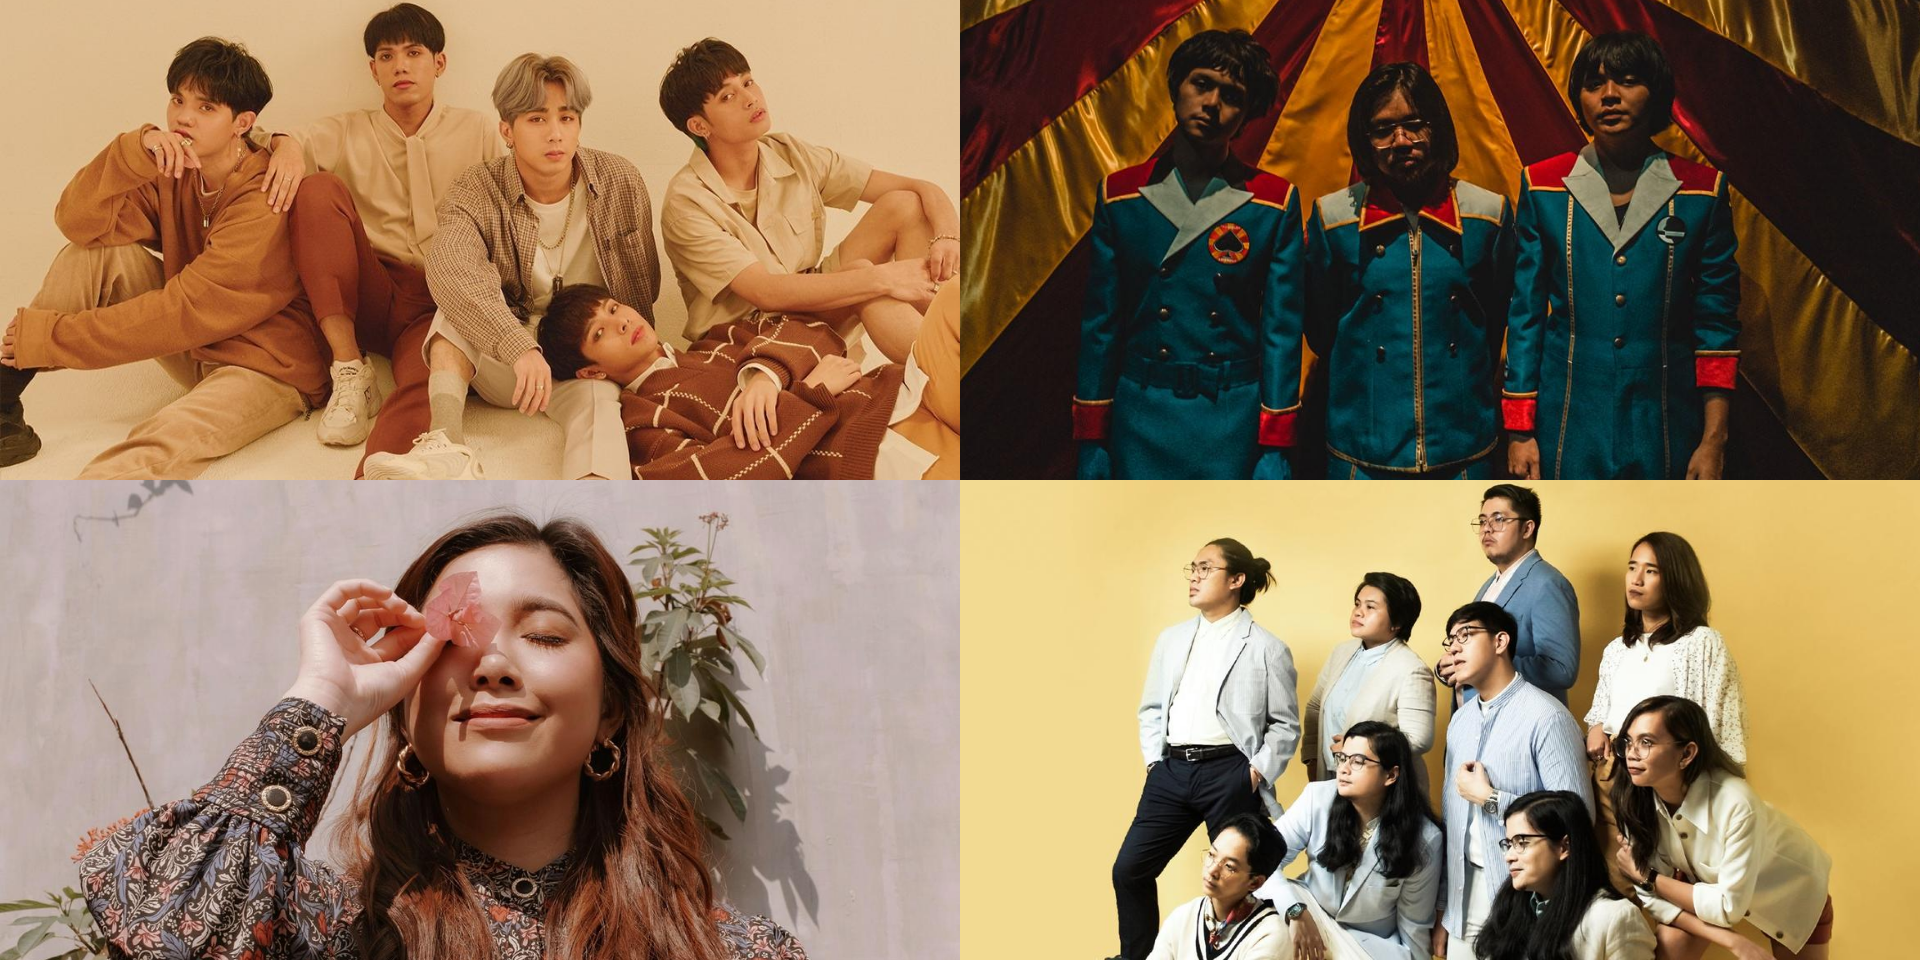 IV of Spades, SB19, Ben&Ben, Moira Dela Torre, and more win at the 33rd Awit Awards